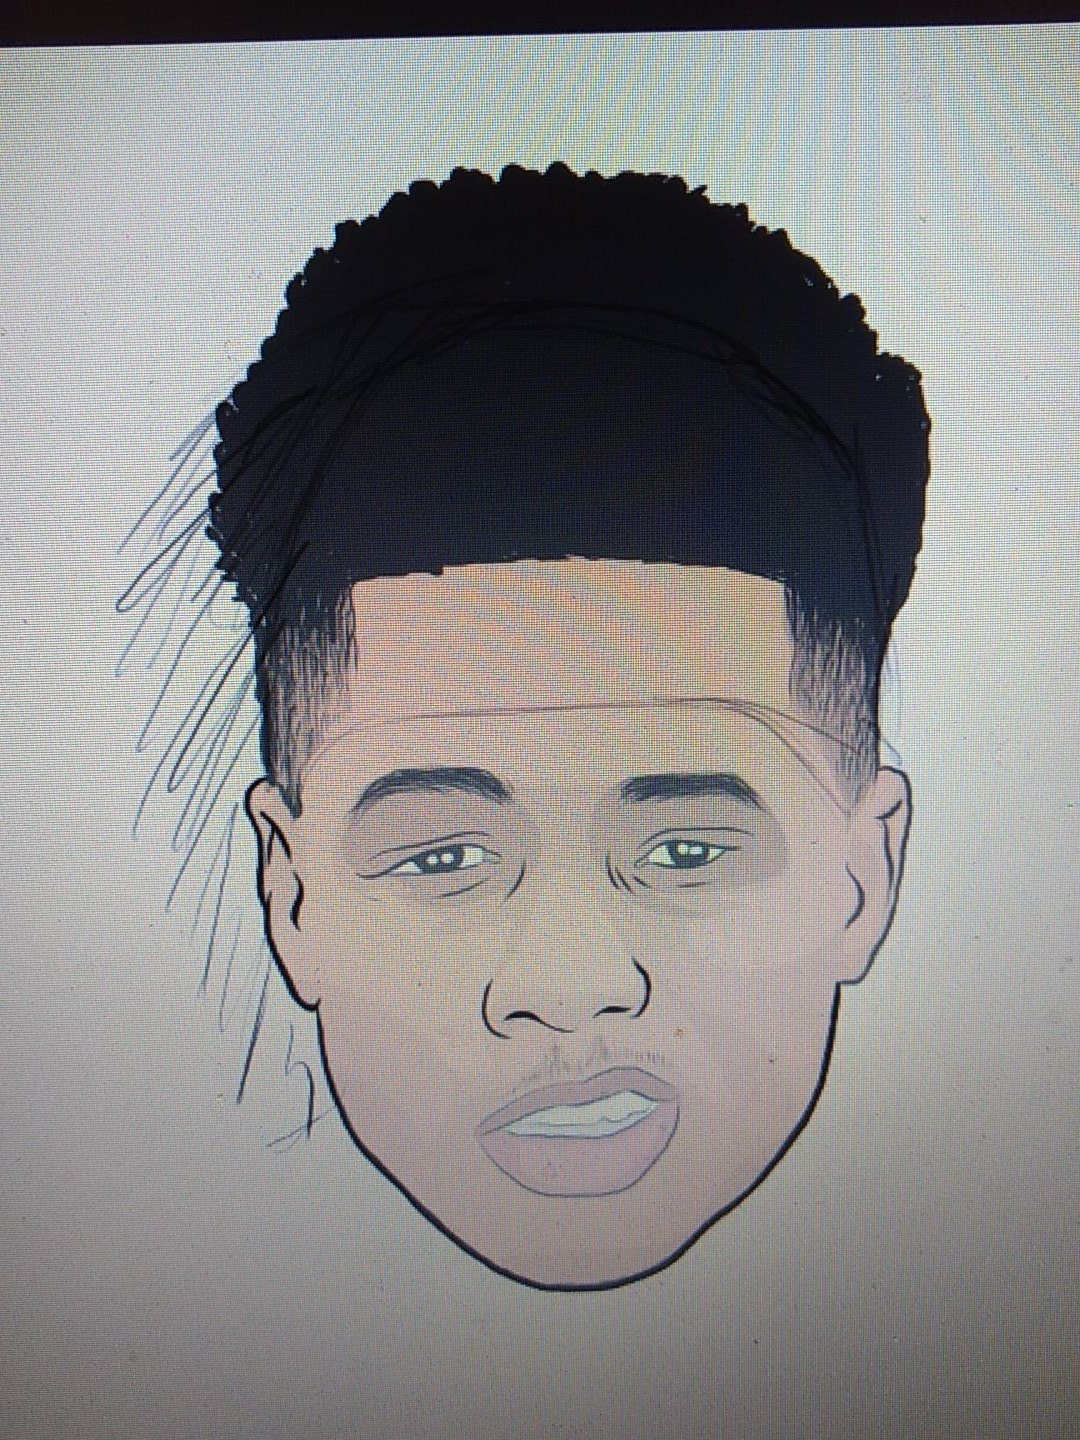 Your Art Plug On Twitter Always Sketching Sketch Art Artist Illustration Illustrator Hair Fashion Artsy Cartoon Toon Head Sketching Smile Grin Fade Haircut Rap Rapper Mustache Facialhair Shave Afro Design Graphics Graphicdesign